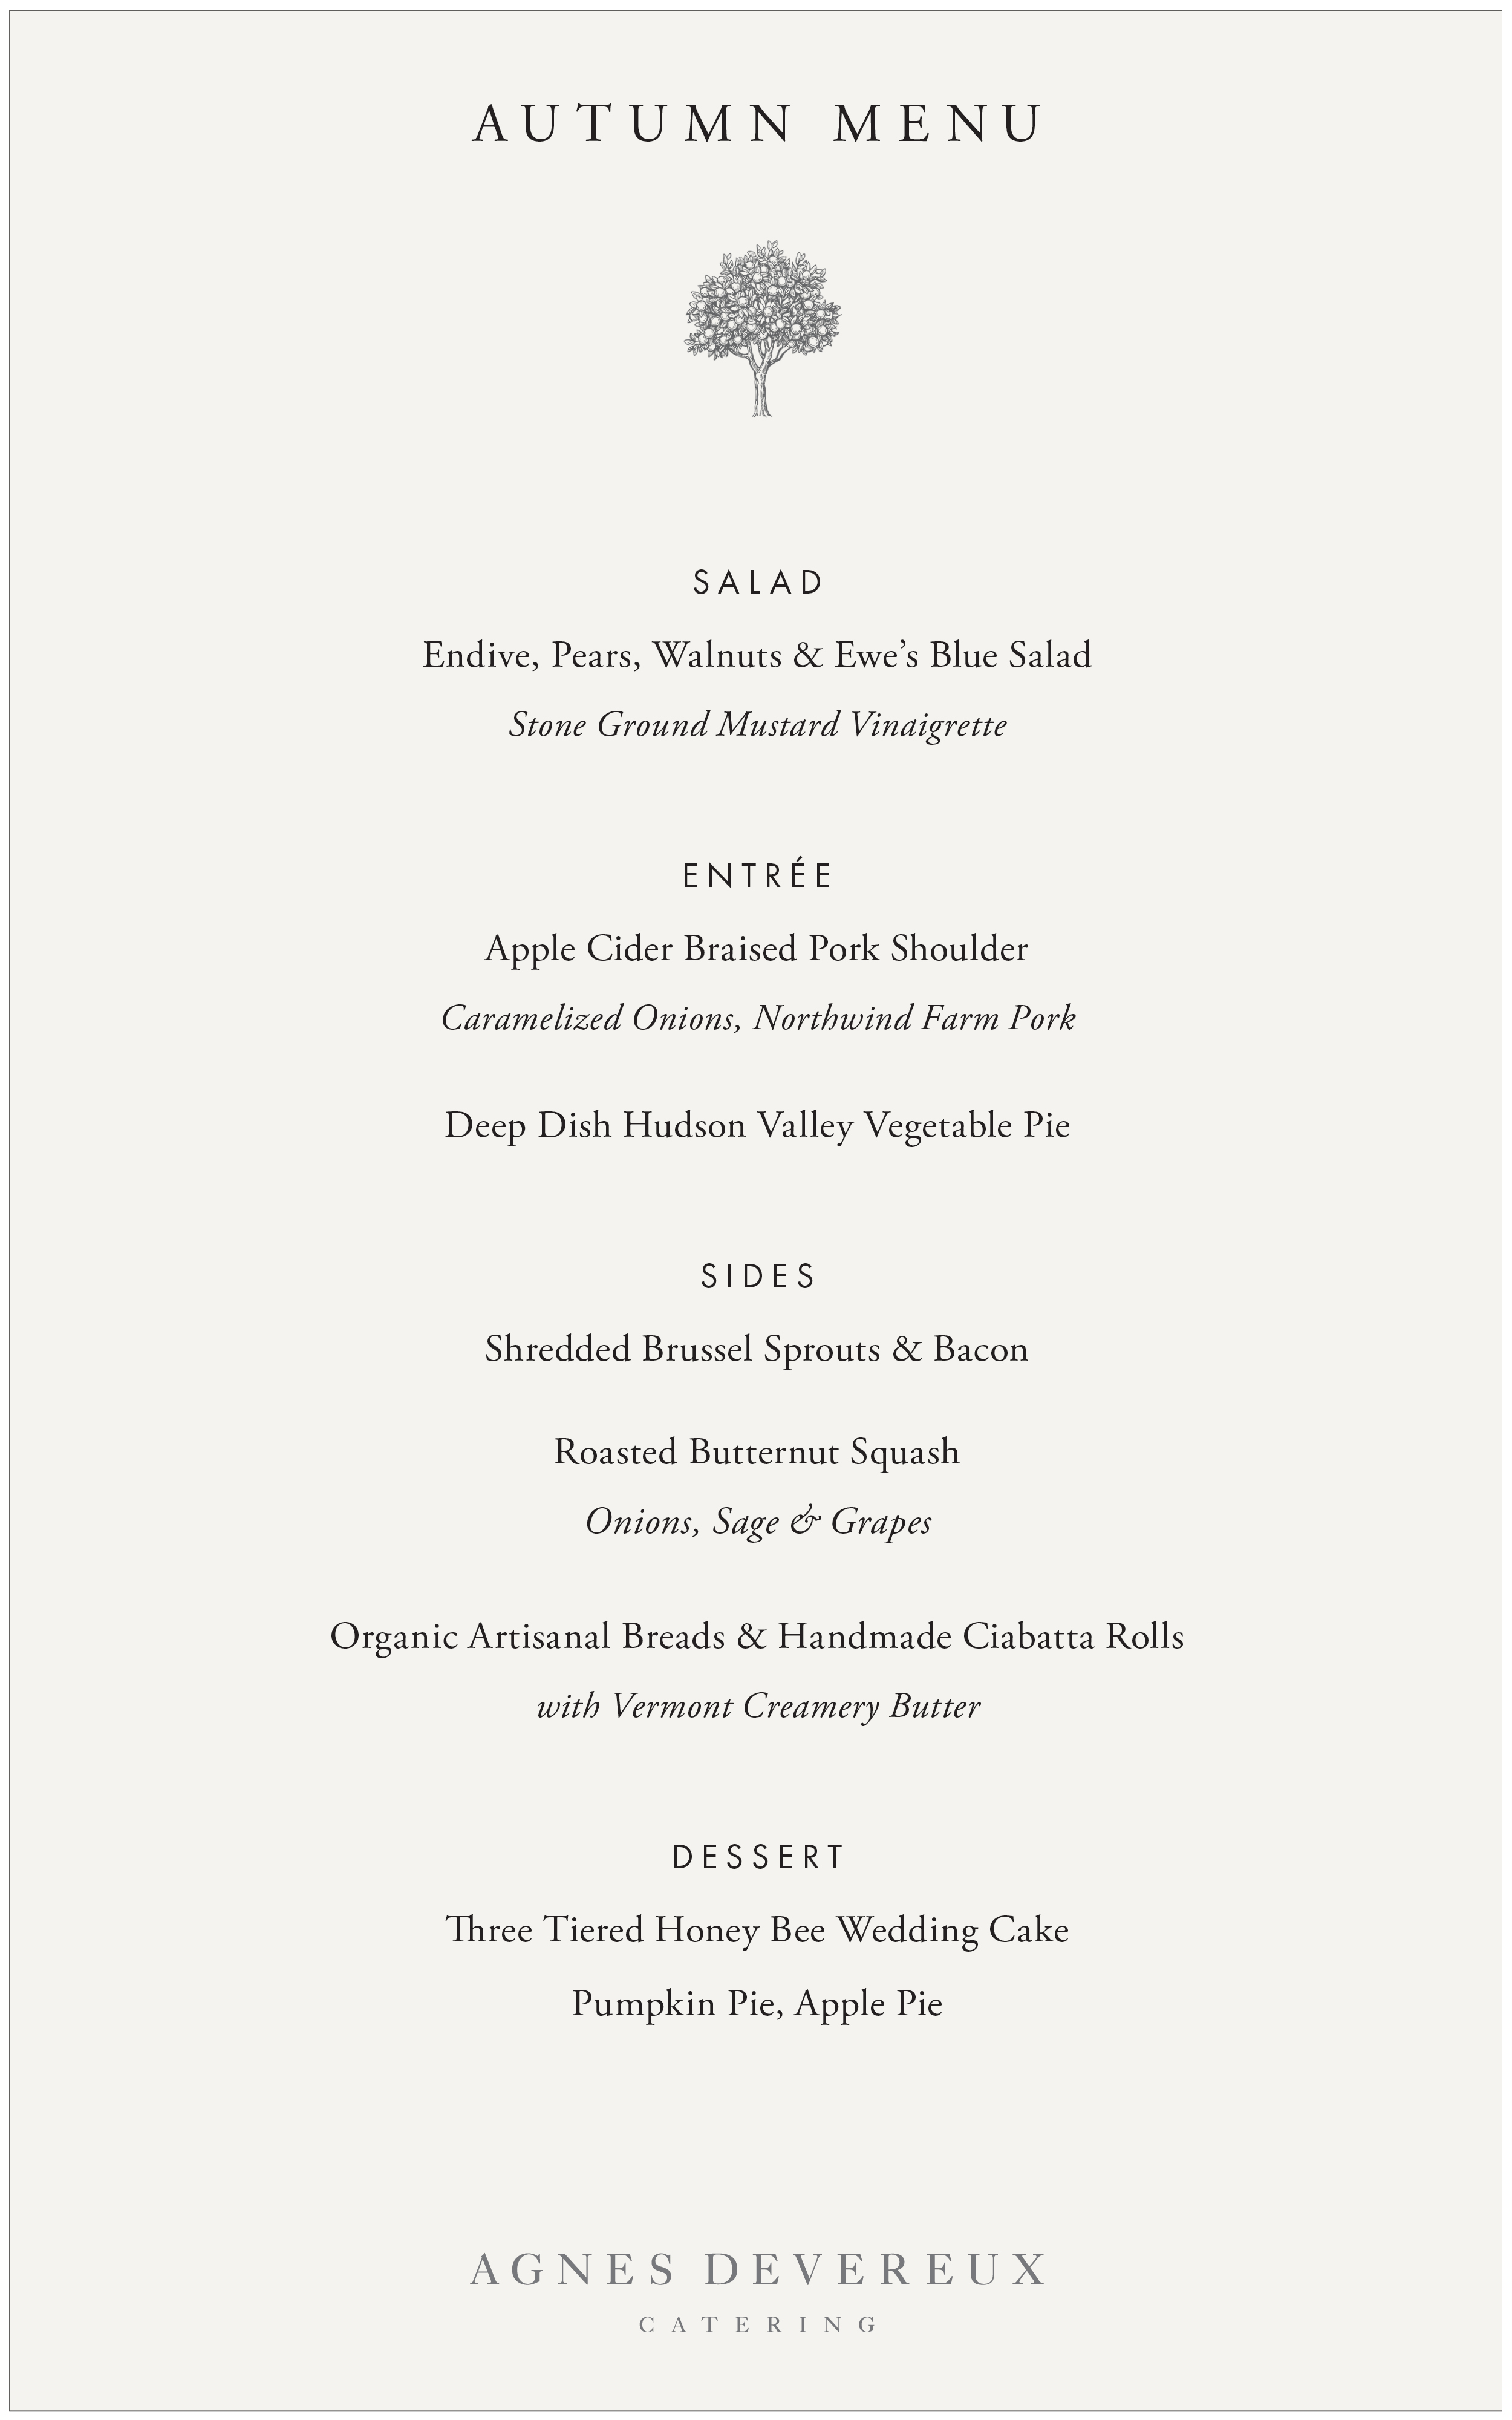 Our Hudson Valley Menus — Agnes Devereux Catering